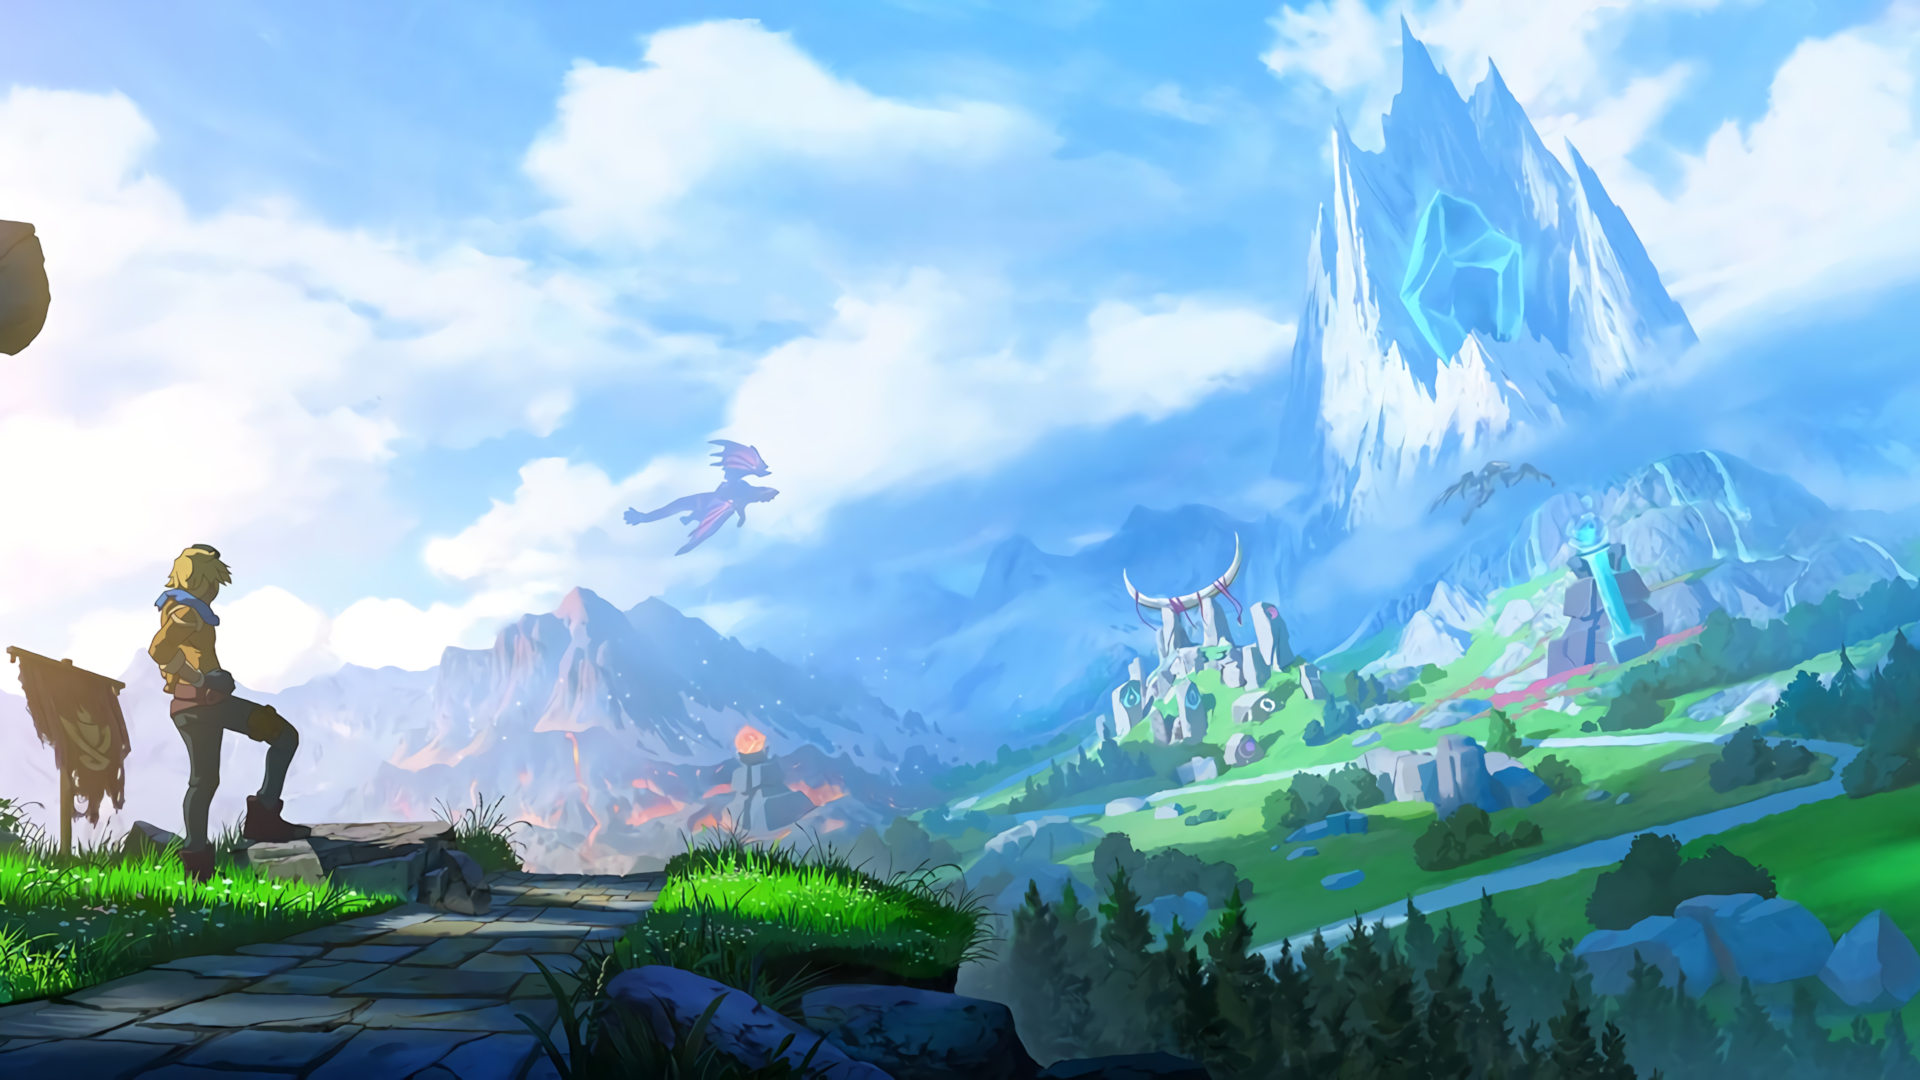 1920x1080 4k League Of Legends 2020 1080p Laptop Full Hd Wallpaper Hd Games 4k Wallpapers Images Photos And Background